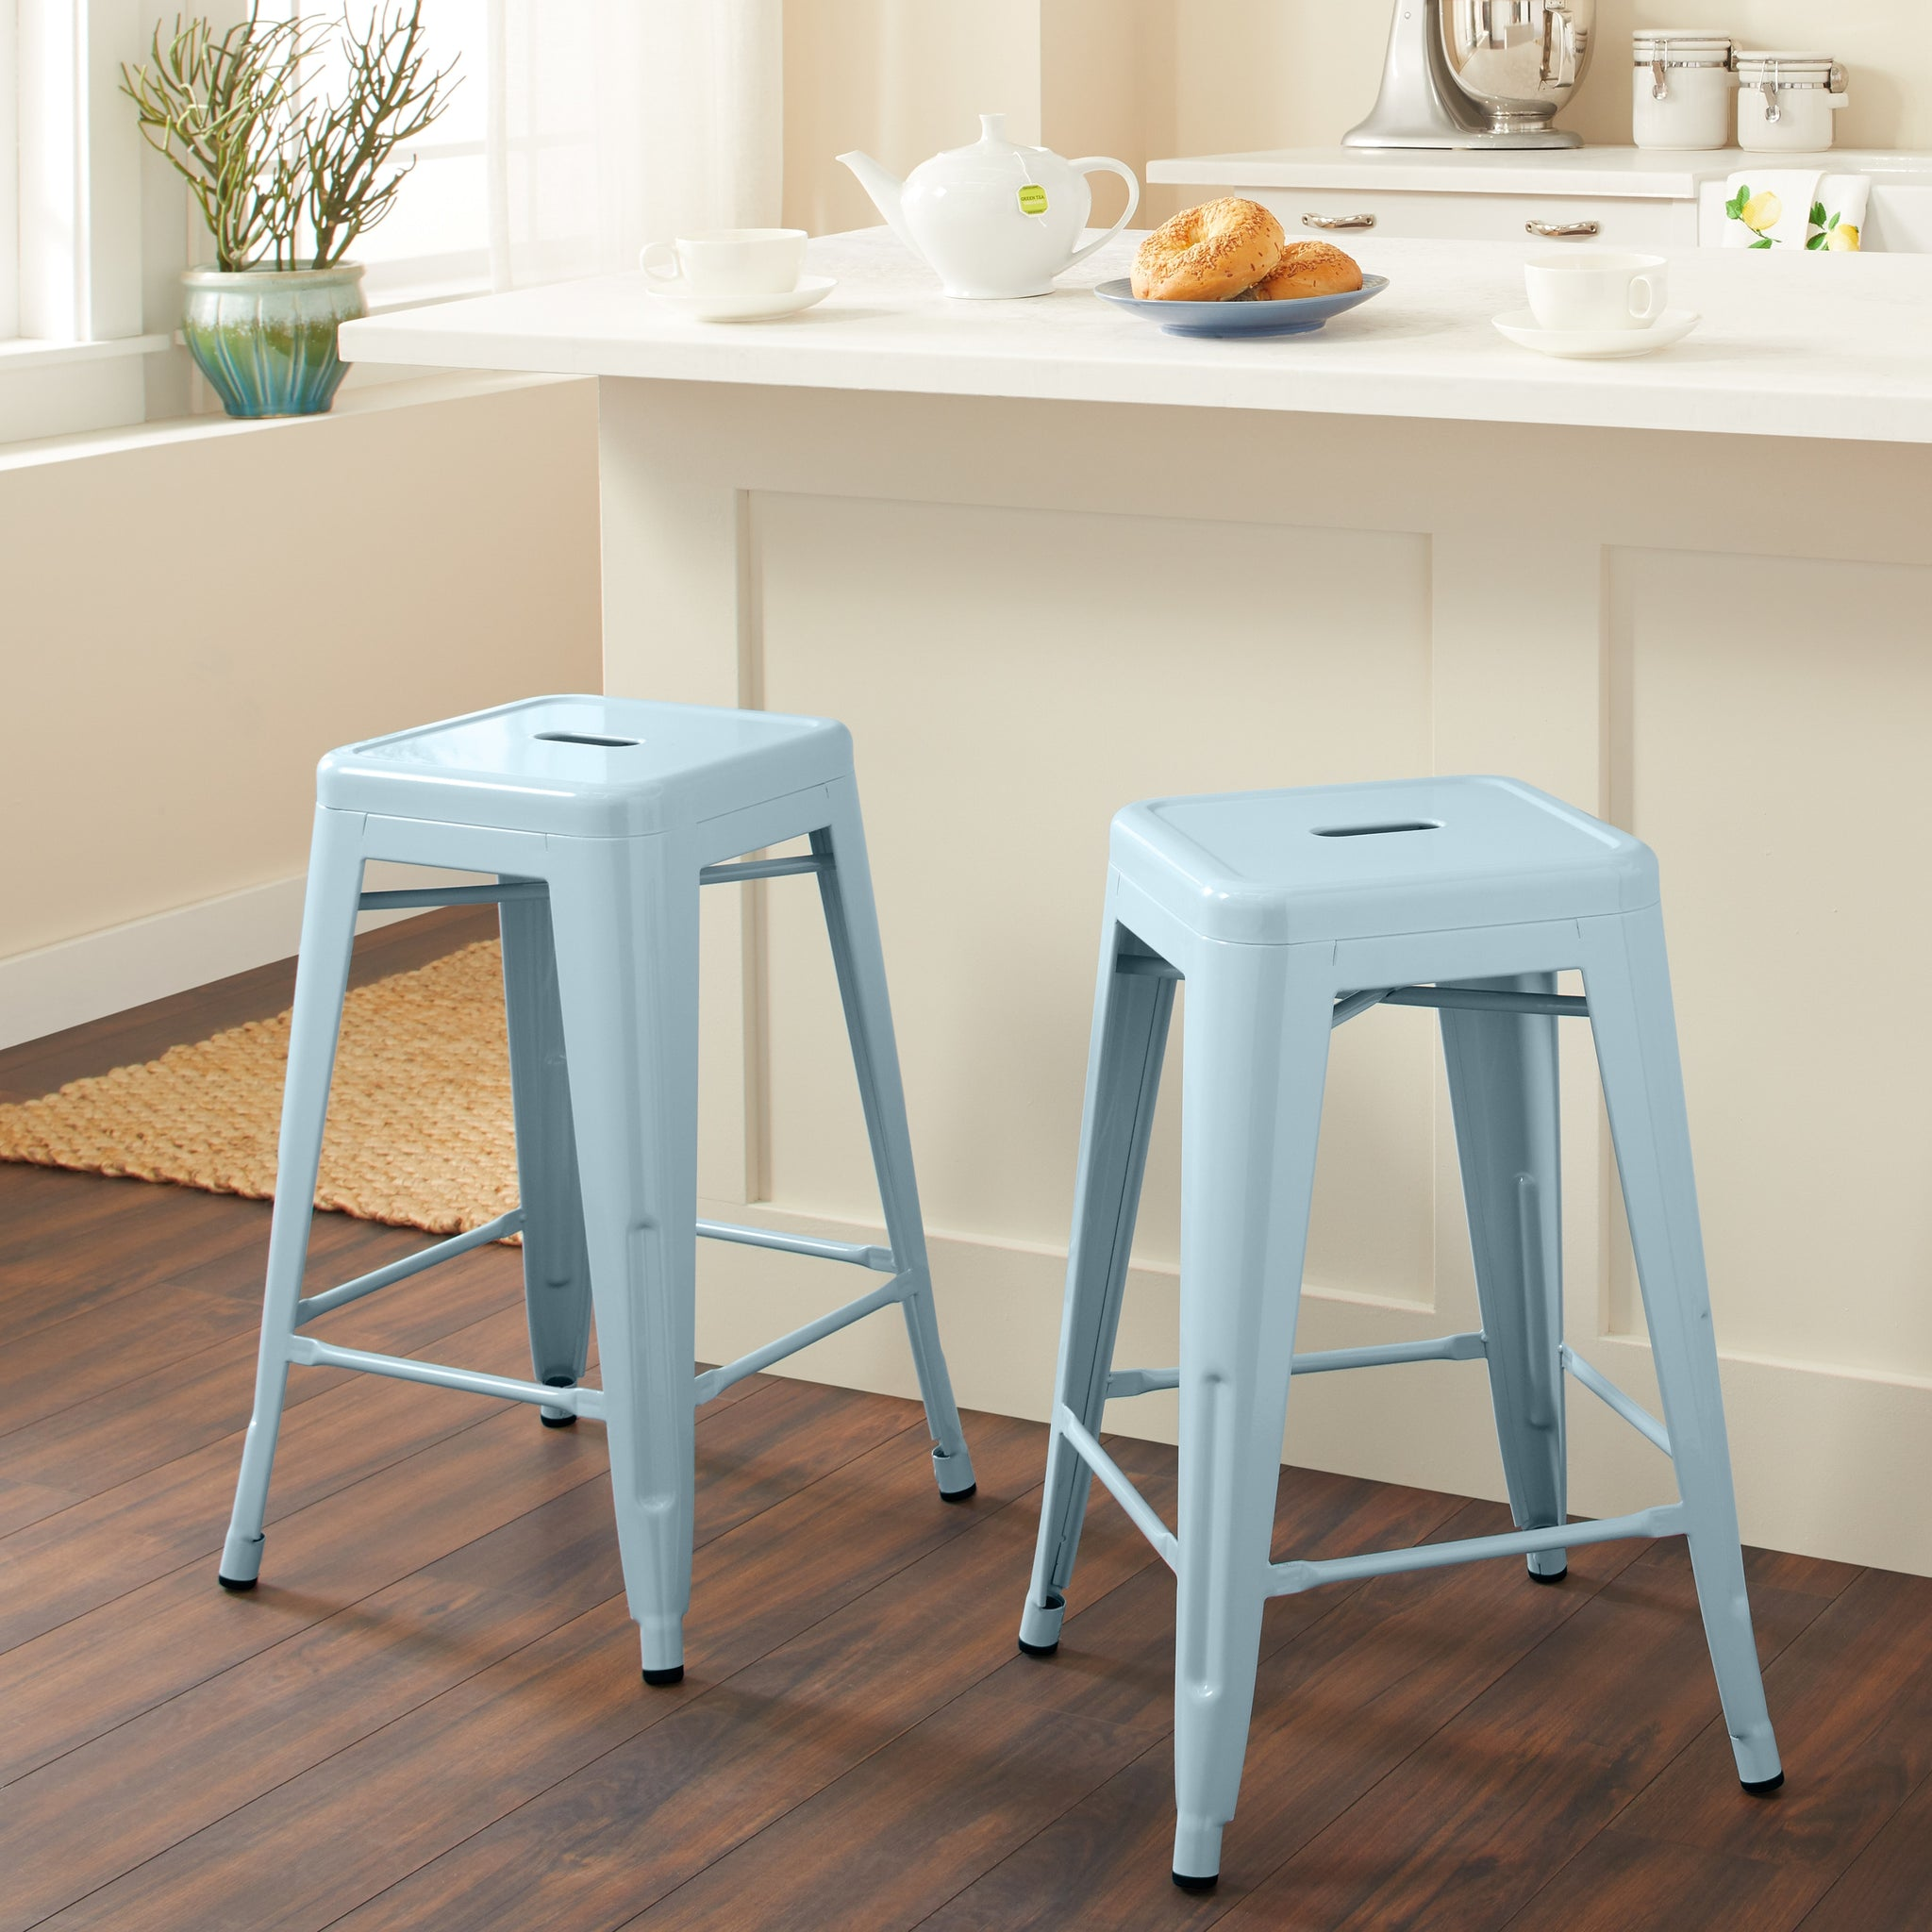 24-inch Blue Counter Stool (Set of 2)